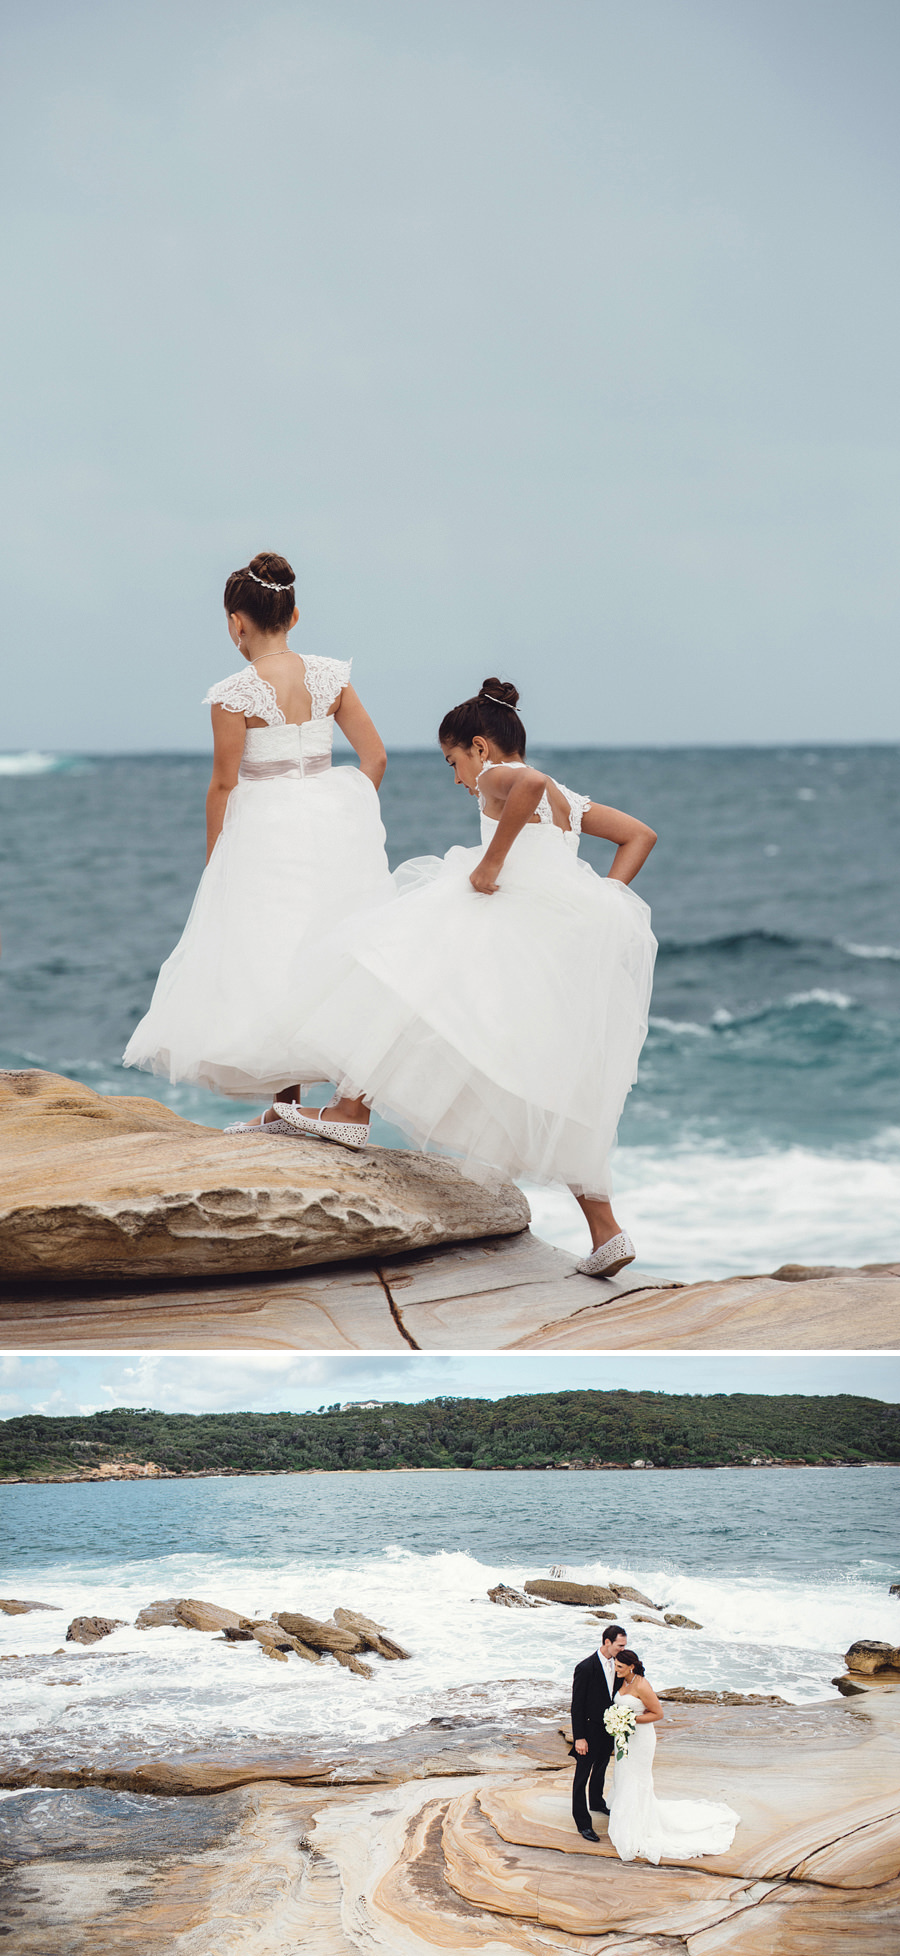 La Perouse Wedding Photographer: Portraits